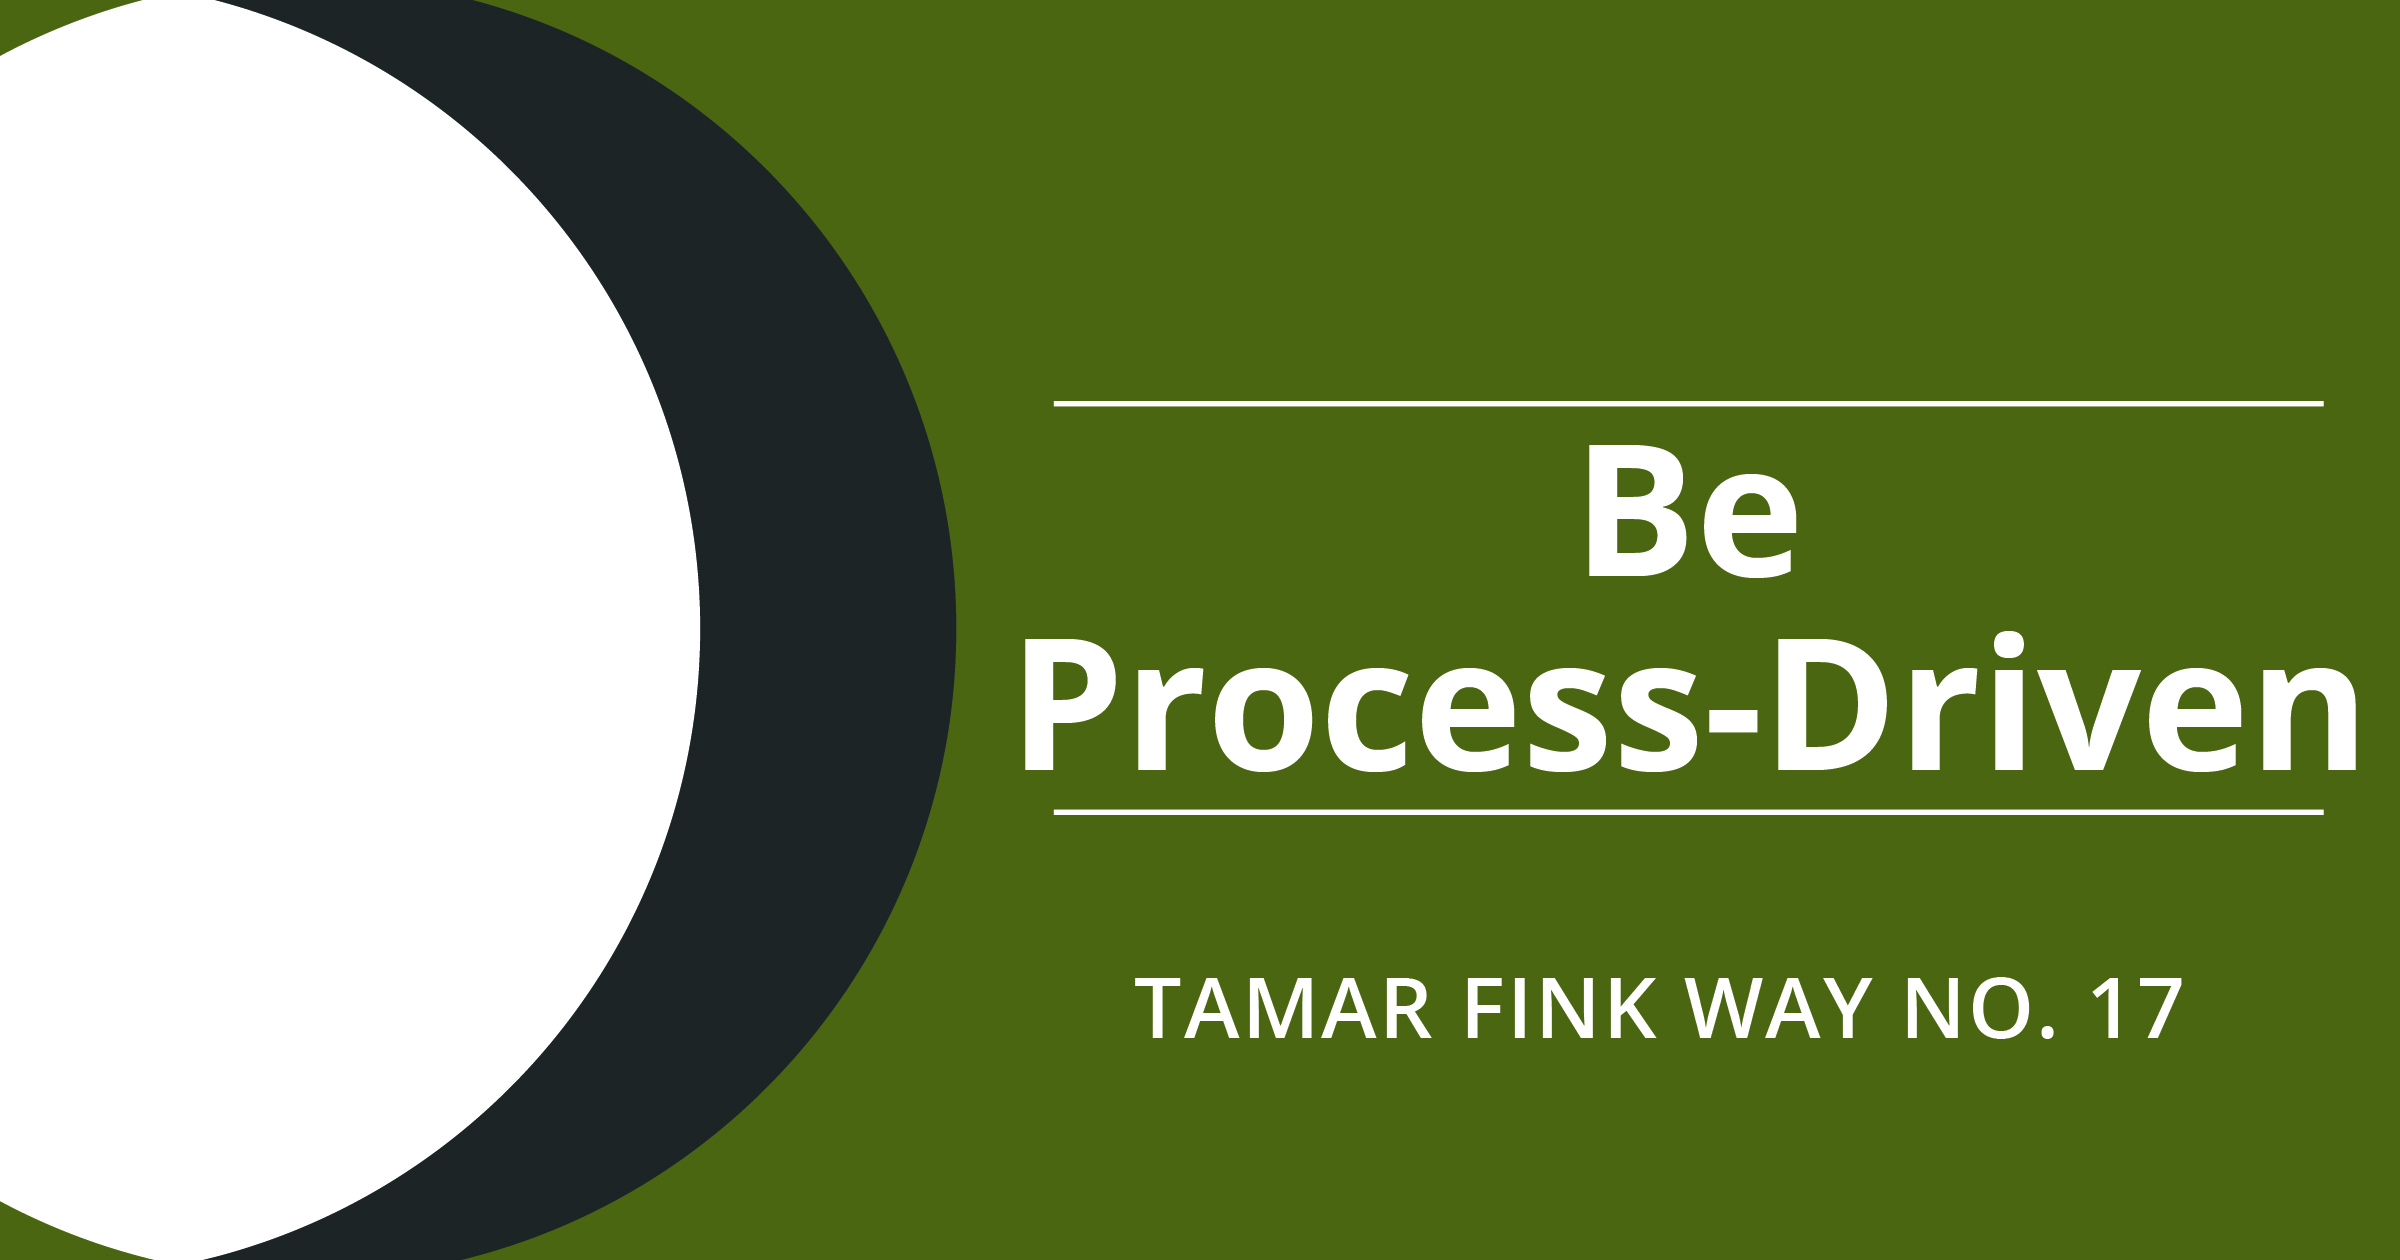 The Tamar Fink Way – #17